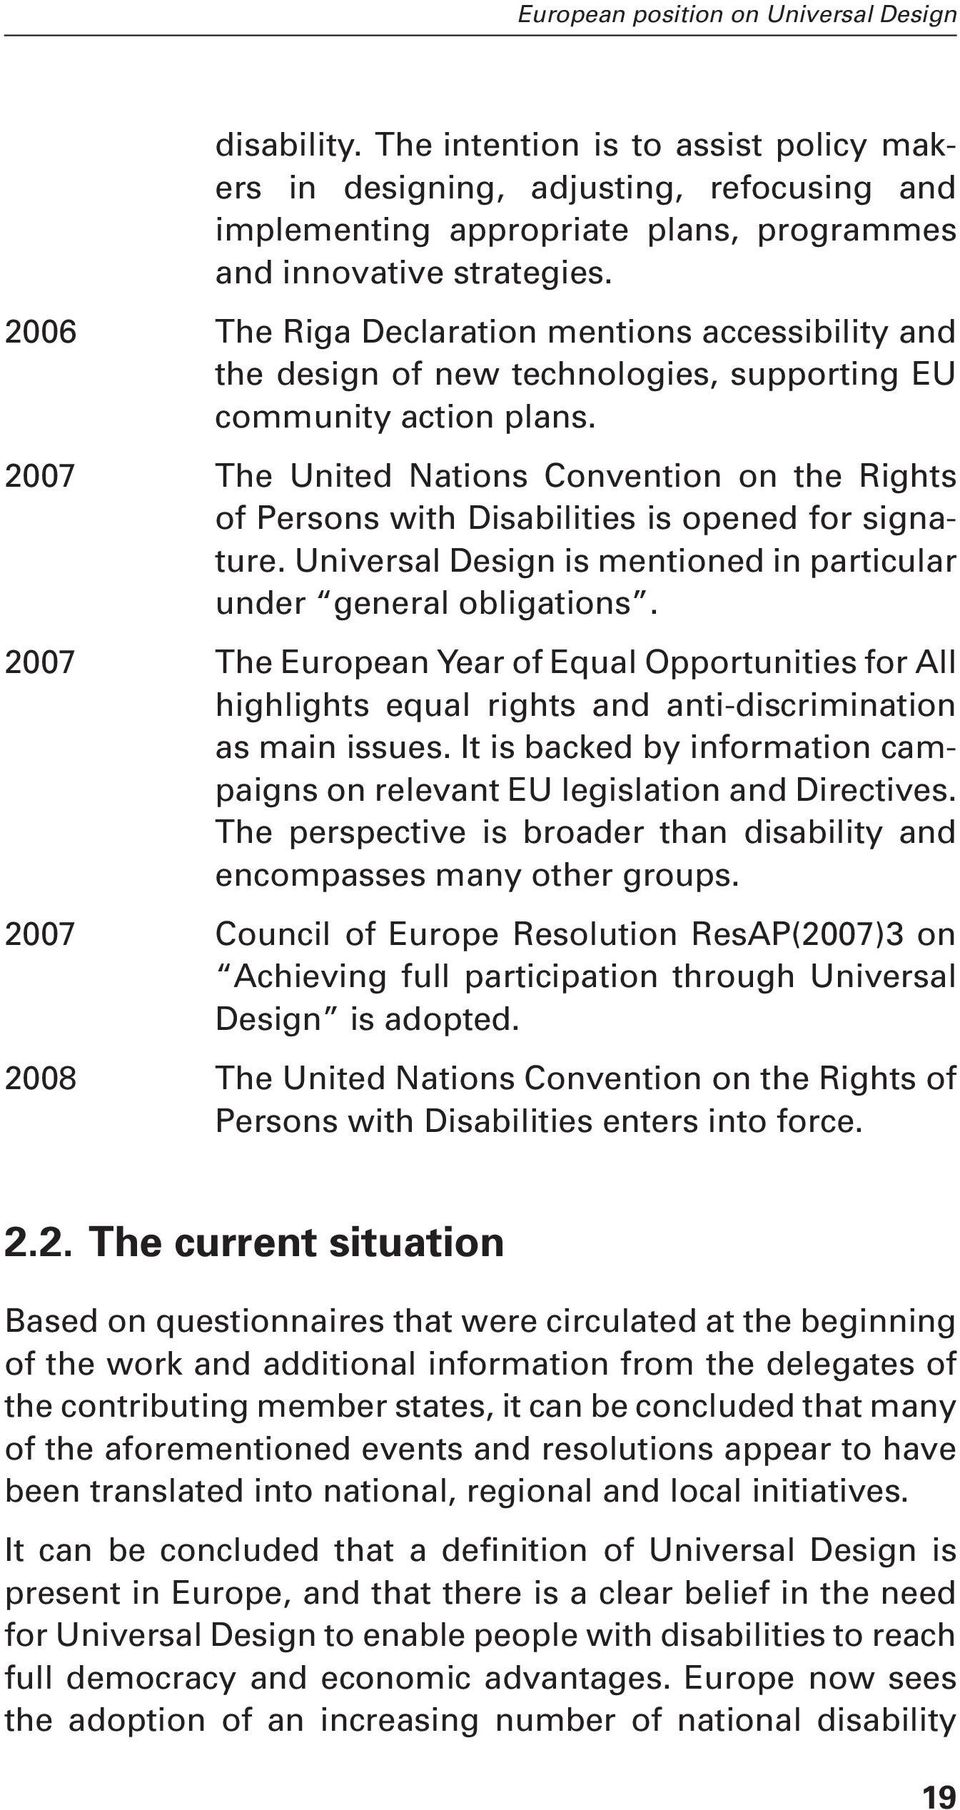 2007 The United Nations Convention on the Rights of Persons with Disabilities is opened for signature. Universal Design is mentioned in particular under general obligations.